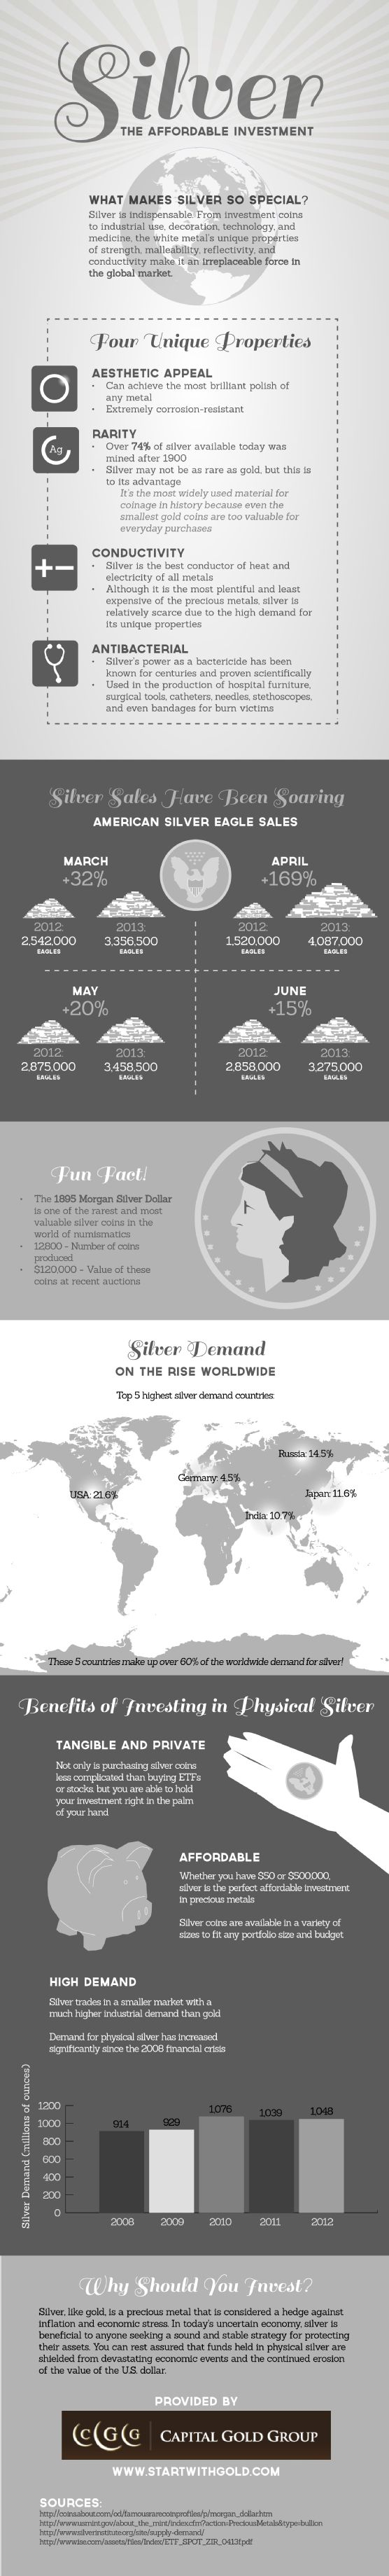 Silver is a known bactericide that can be found in some hospital furniture, surgical tools, catheters, needles, and stethoscopes. Take a look at this infographic from a Los Angeles gold and silver investment group to learn more about this precious metal.